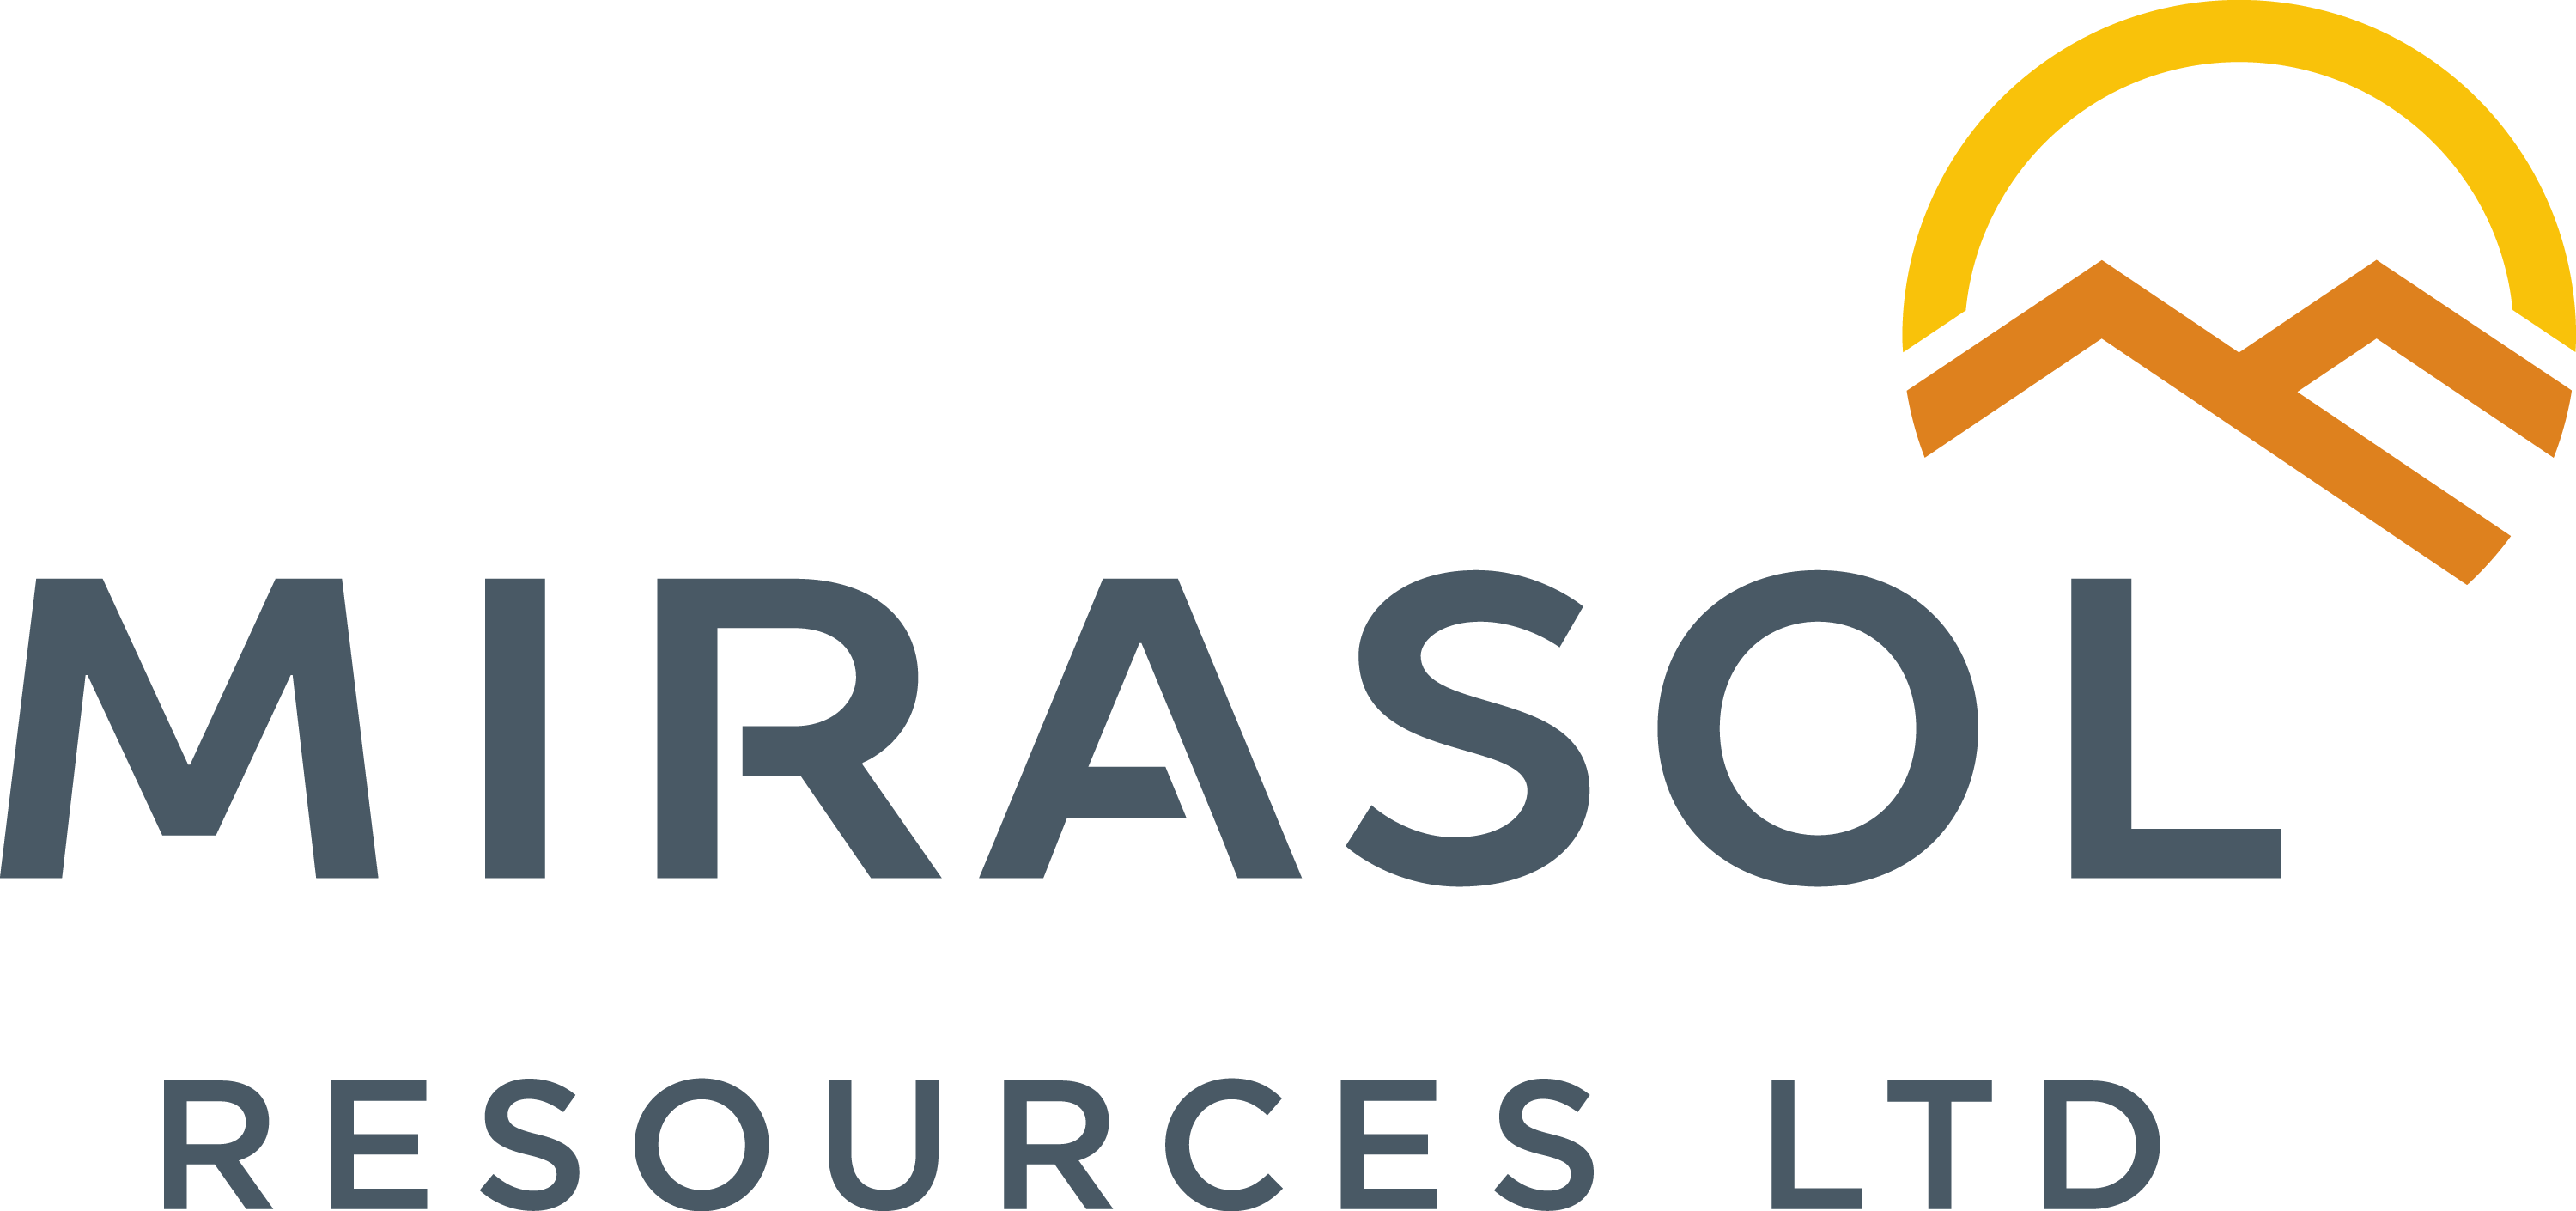 Mirasol Resources